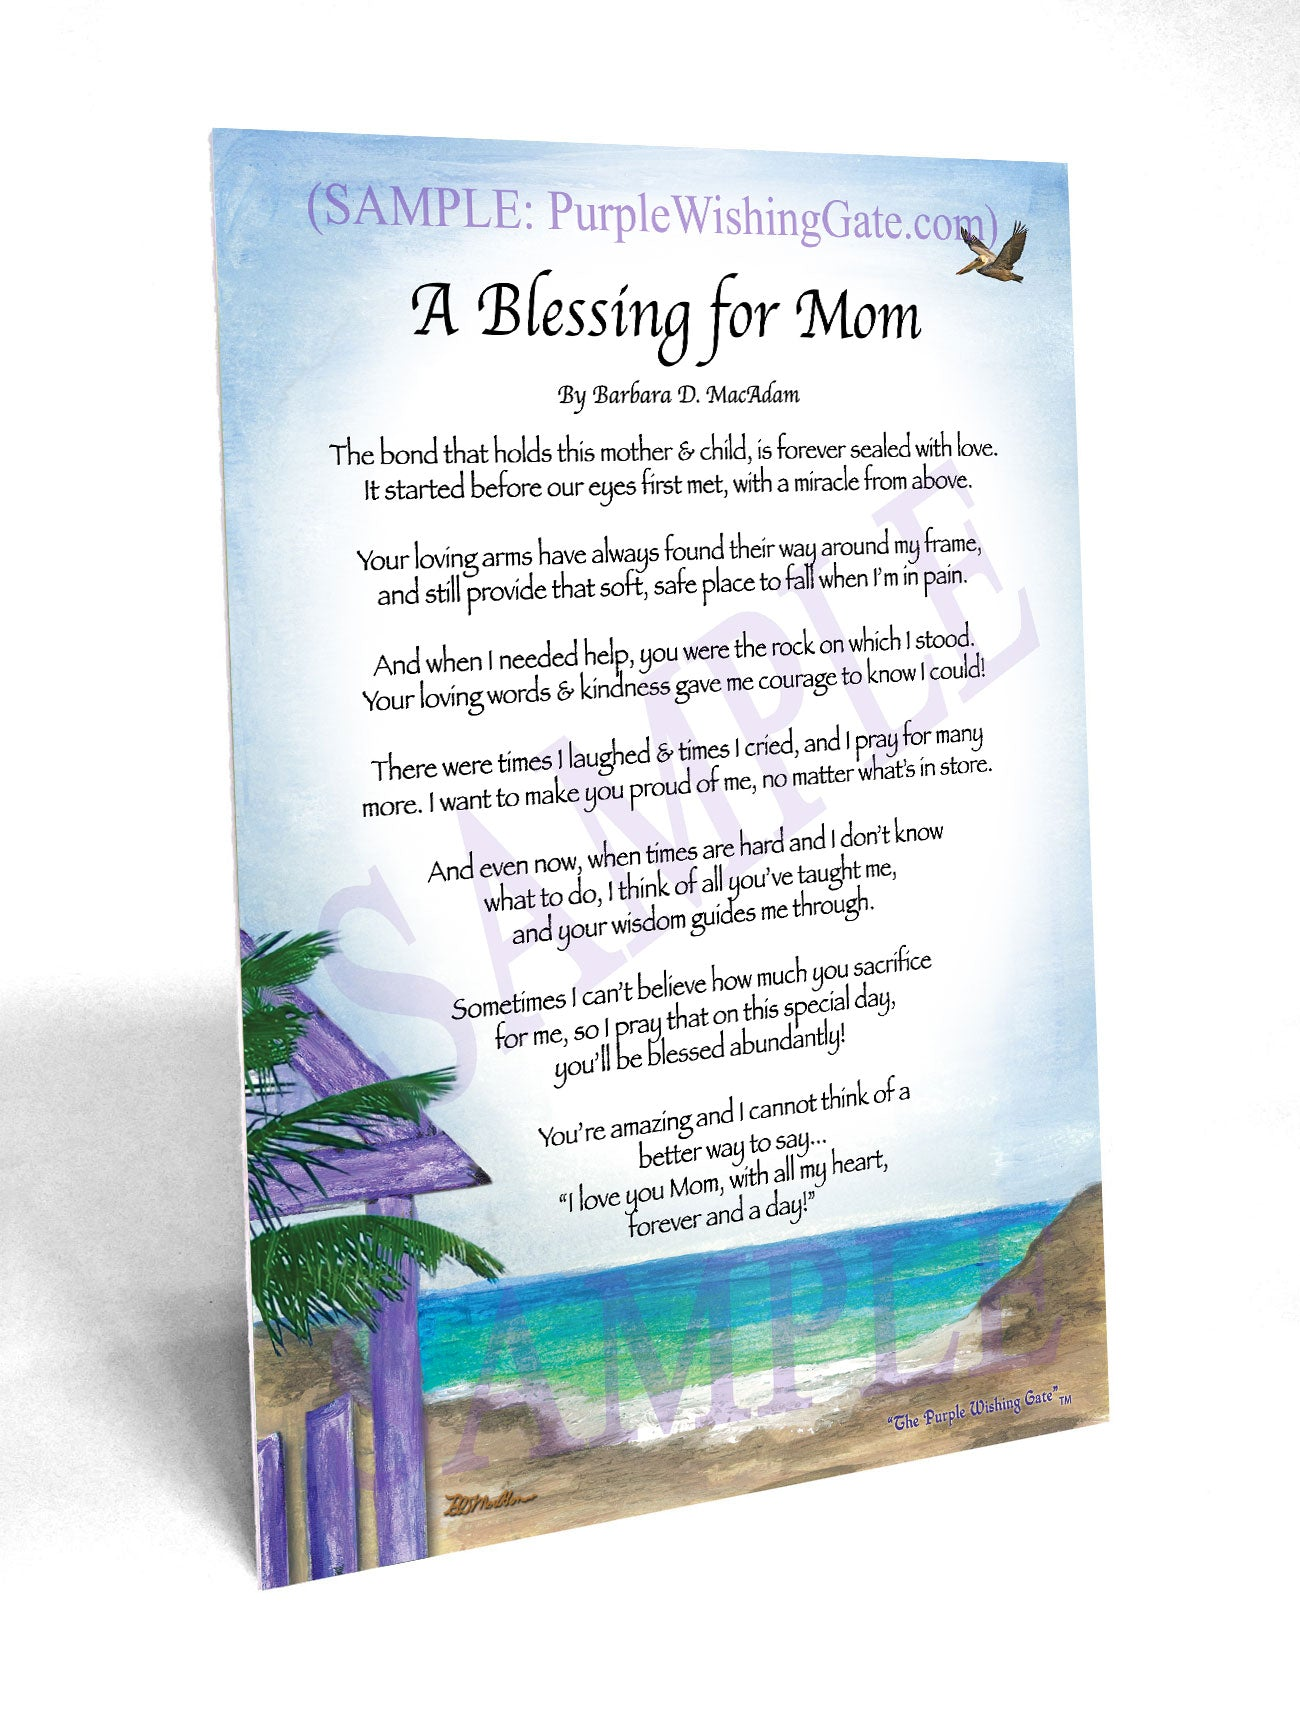 A Blessing for Mom - Gifts for Mom-Mother - PurpleWishingGate.com